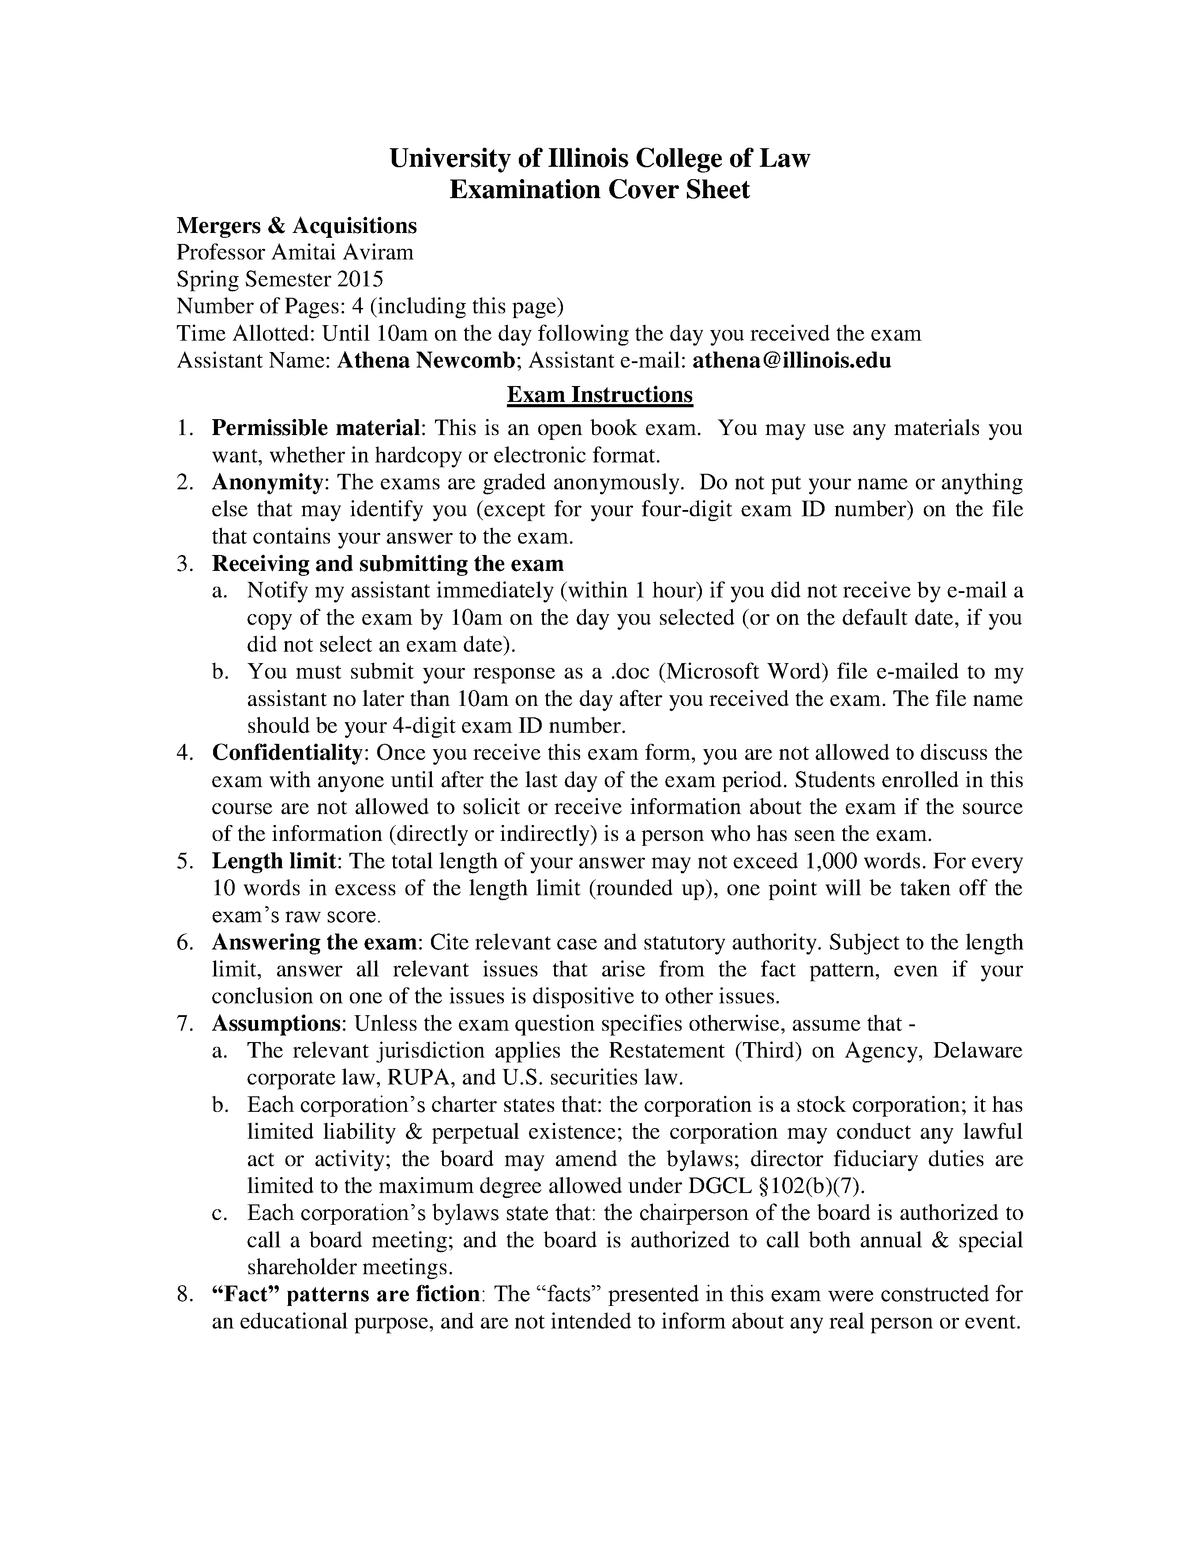 Sample/practice exam Spring 2015, questions - law 794 - ISU